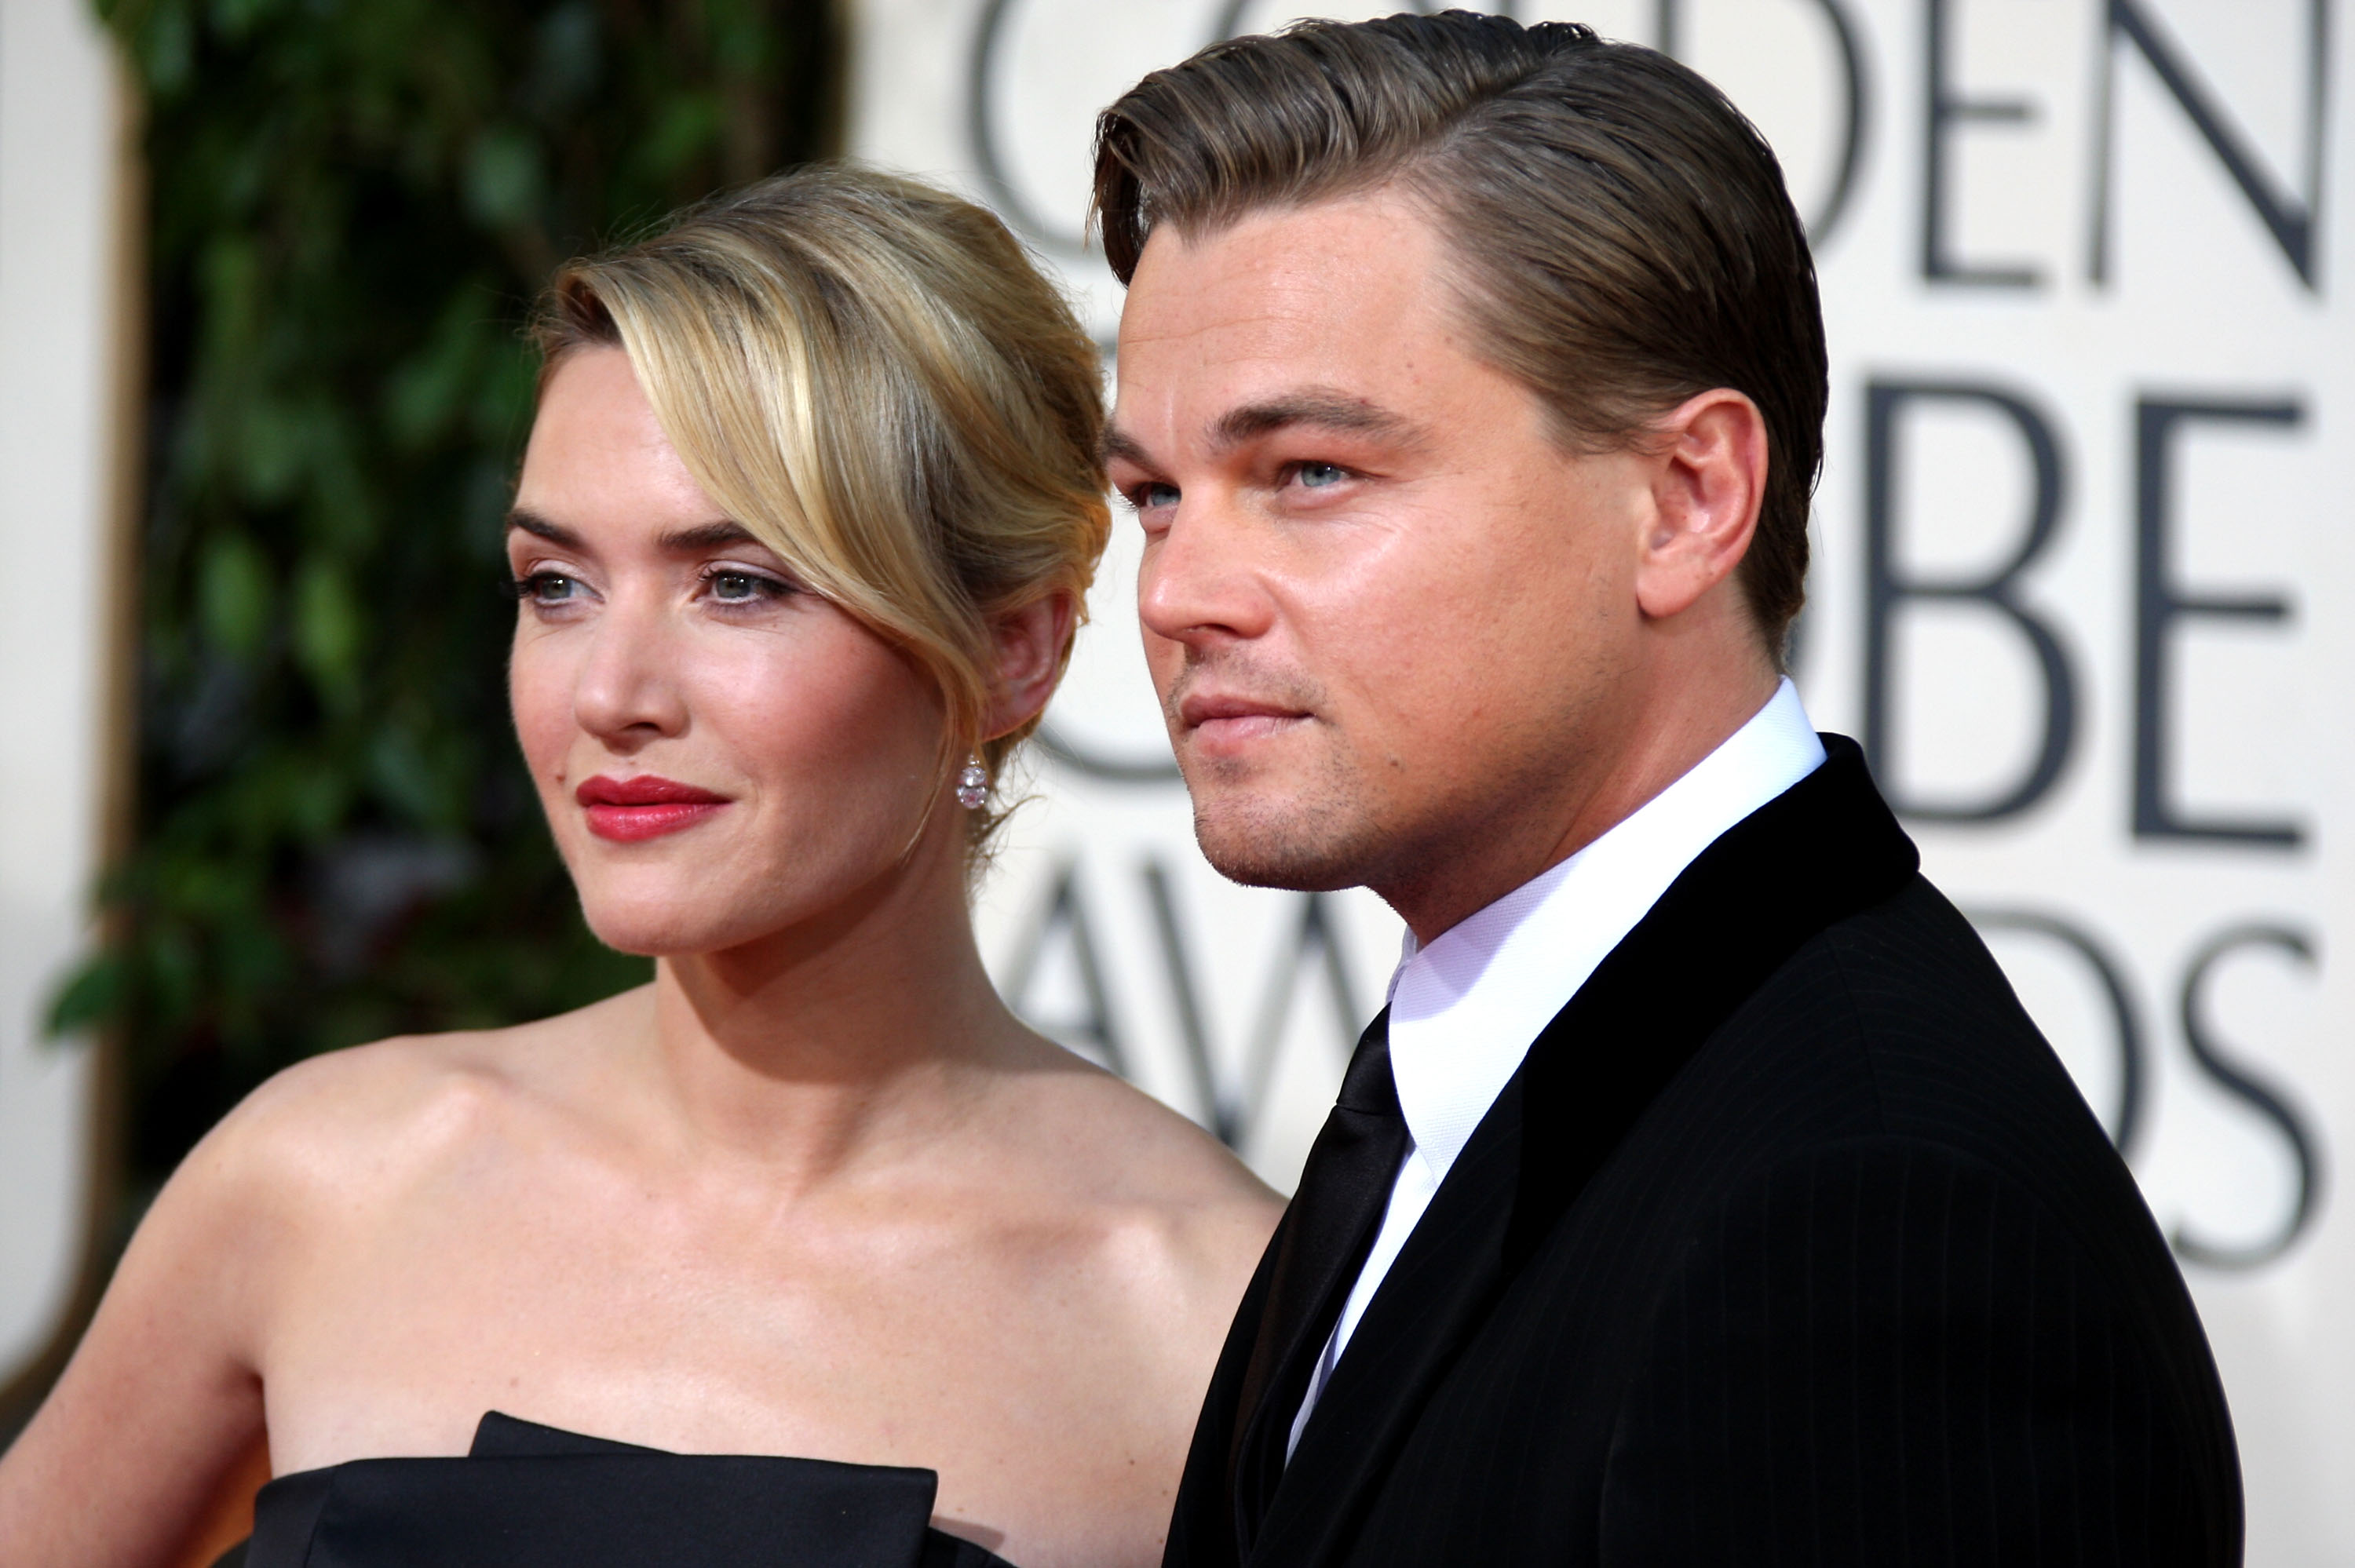 leonardo-dicaprio-and-kate-winslet-1.jpg